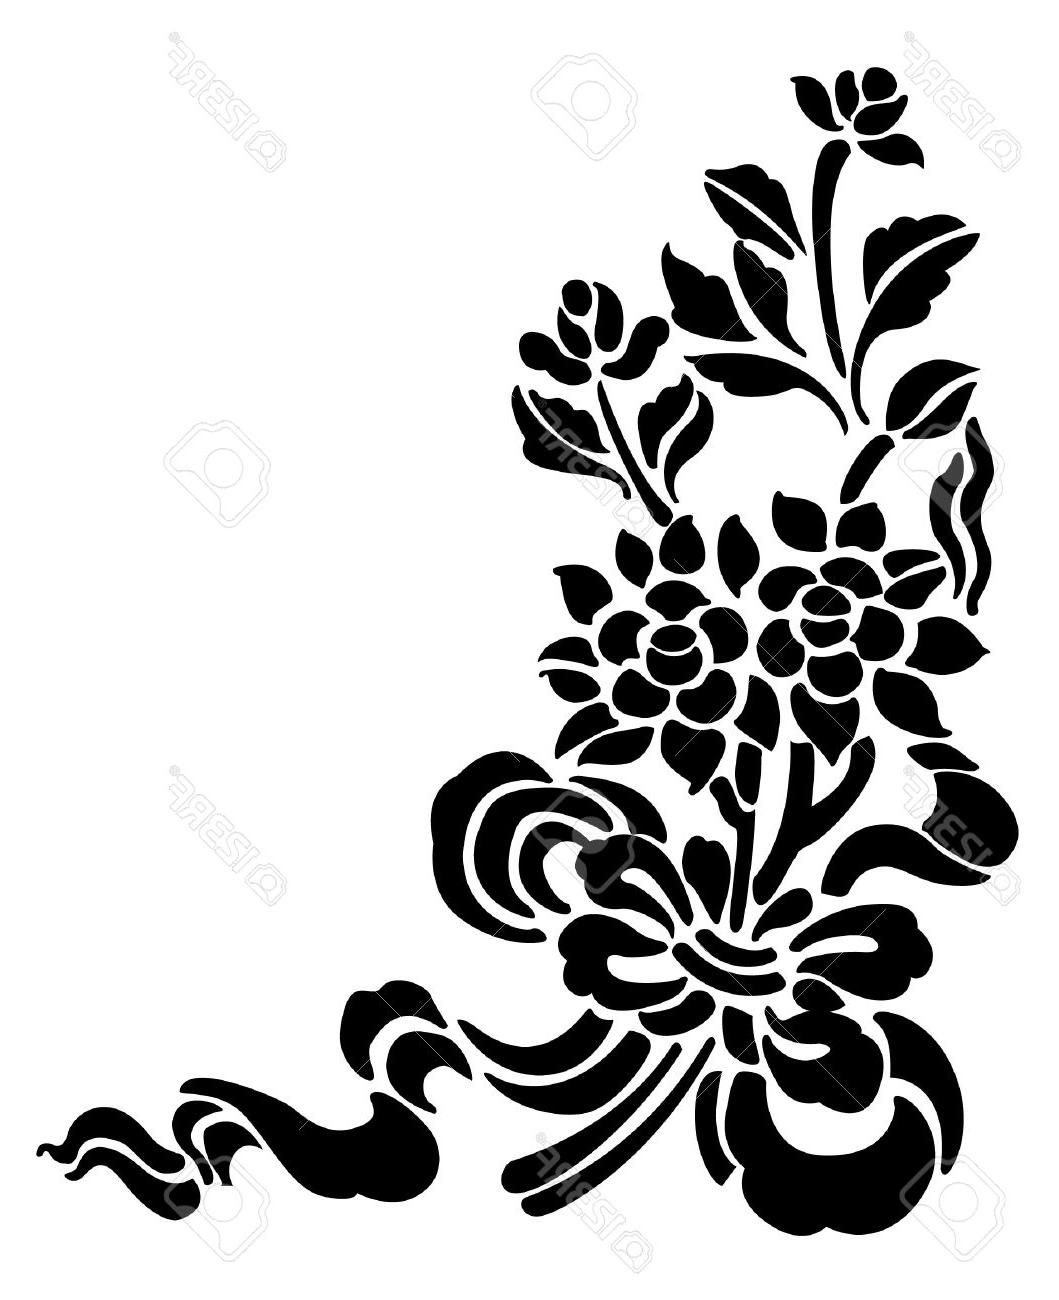 Tribal rose drawing at getdrawings free for personal use 1059x1300 best 15 tattoo of lotus stock vector rose tribal flower drawing izmirmasajfo